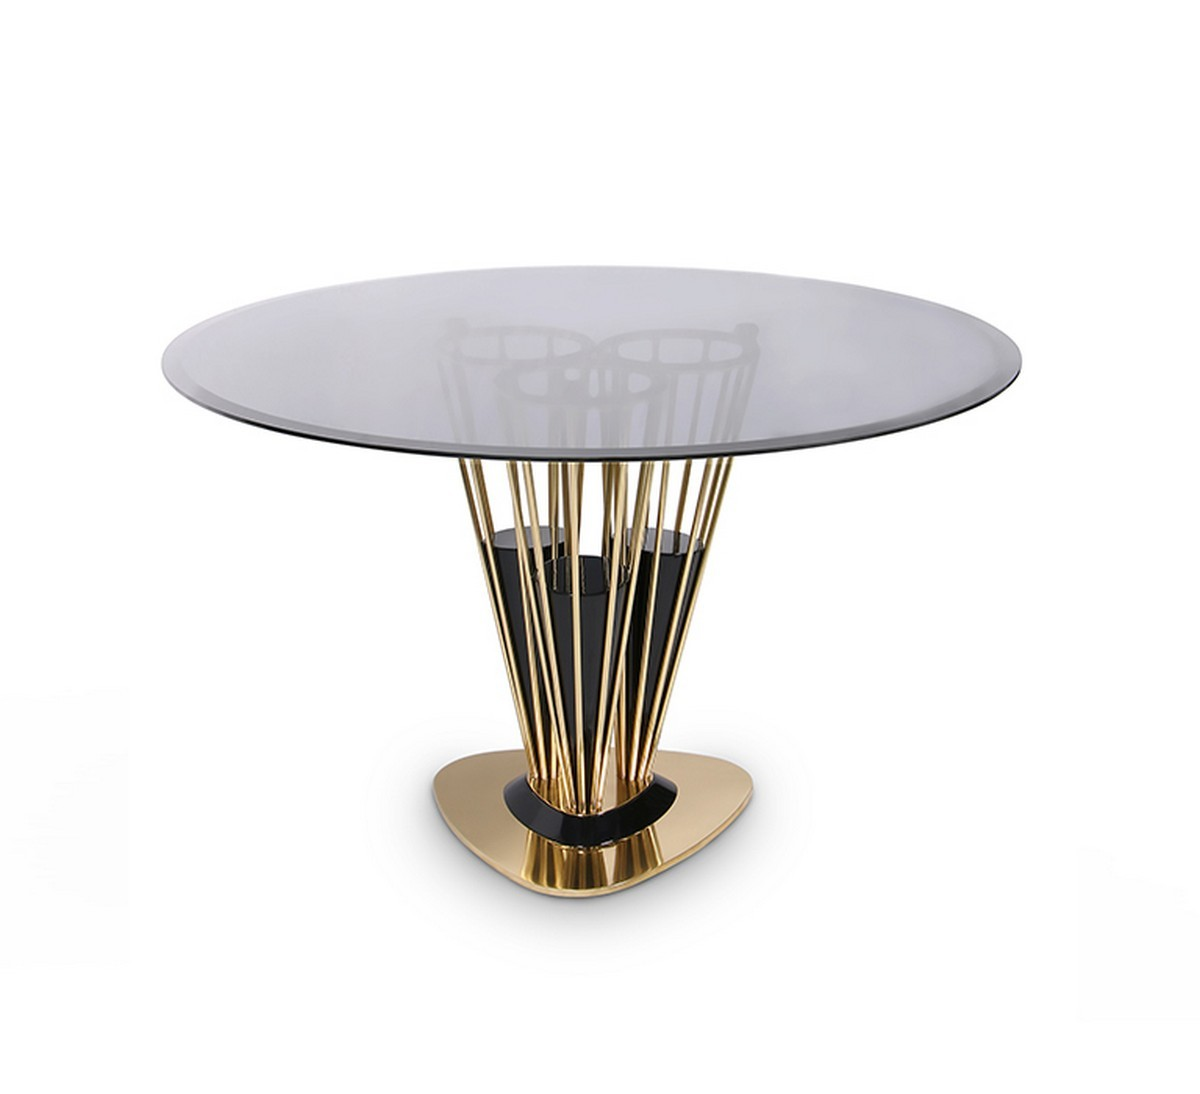 Trendy Dining Tables For 2019 trendy dining tables Trendy Dining Tables For 2019 wicnhester